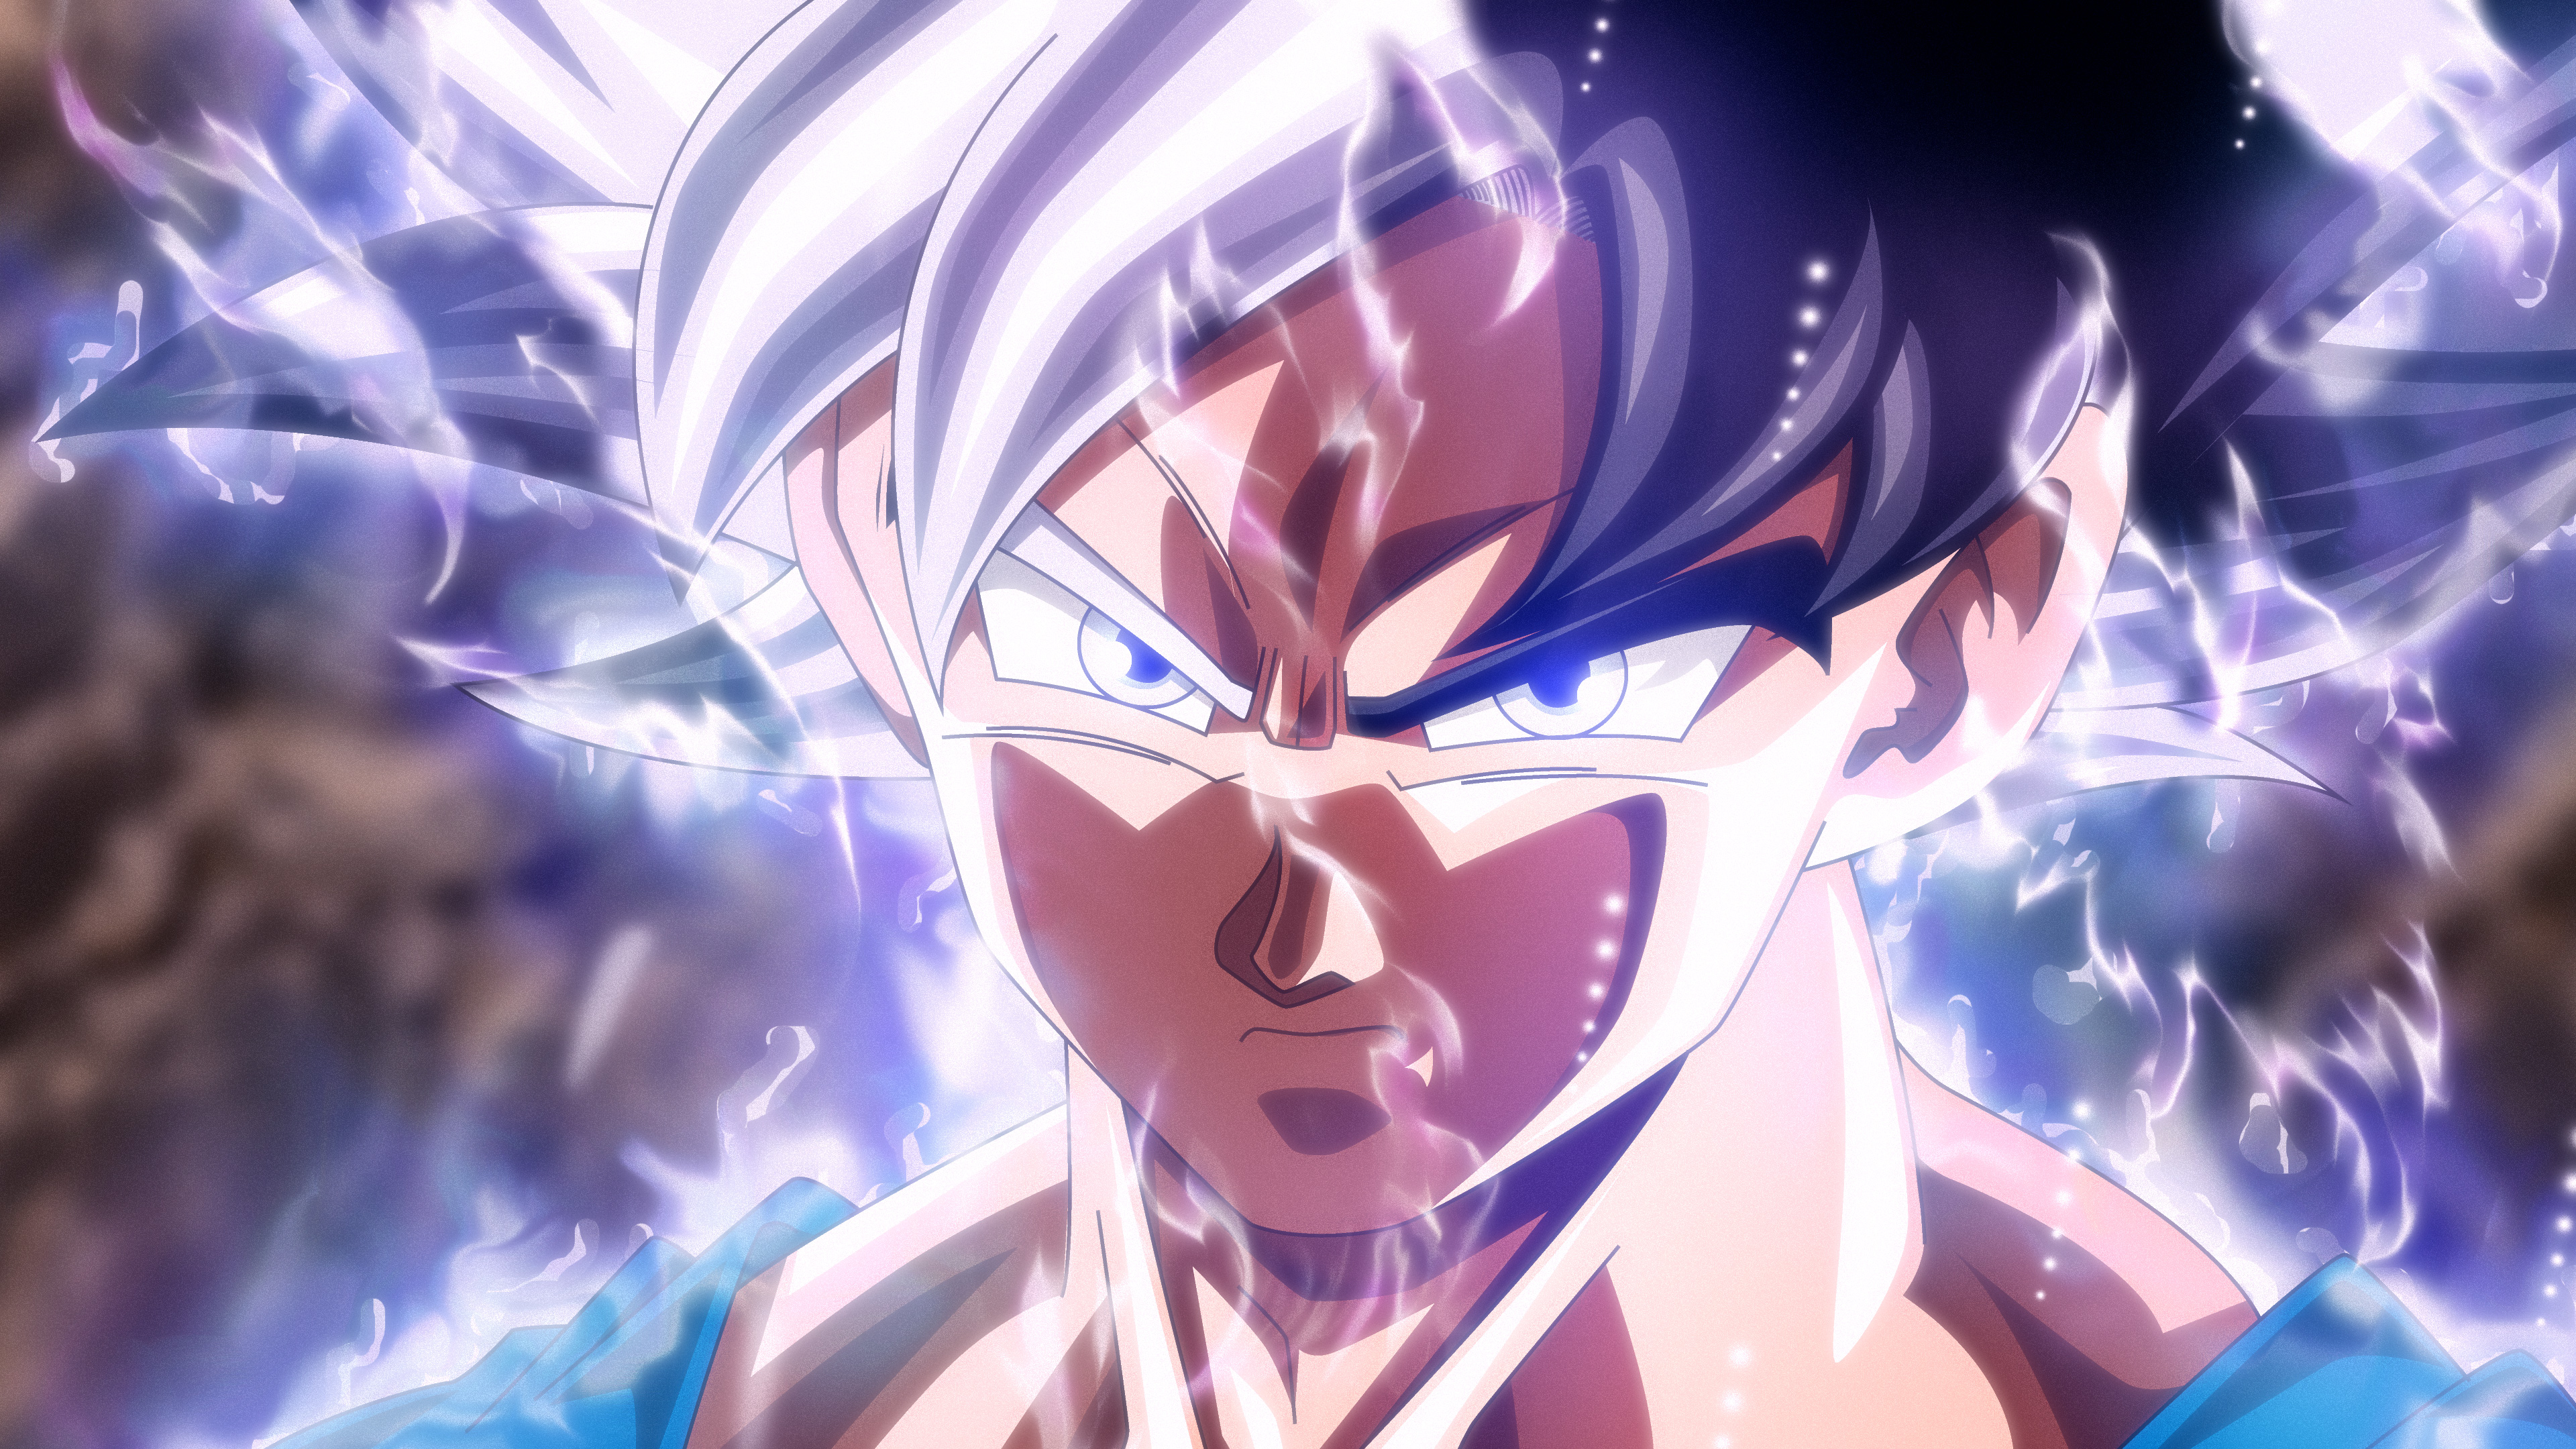 Goku Ultra Instinct Wallpaper 1080p: 1920x1200 Son Goku Mastered Ultra Instinct 1080P